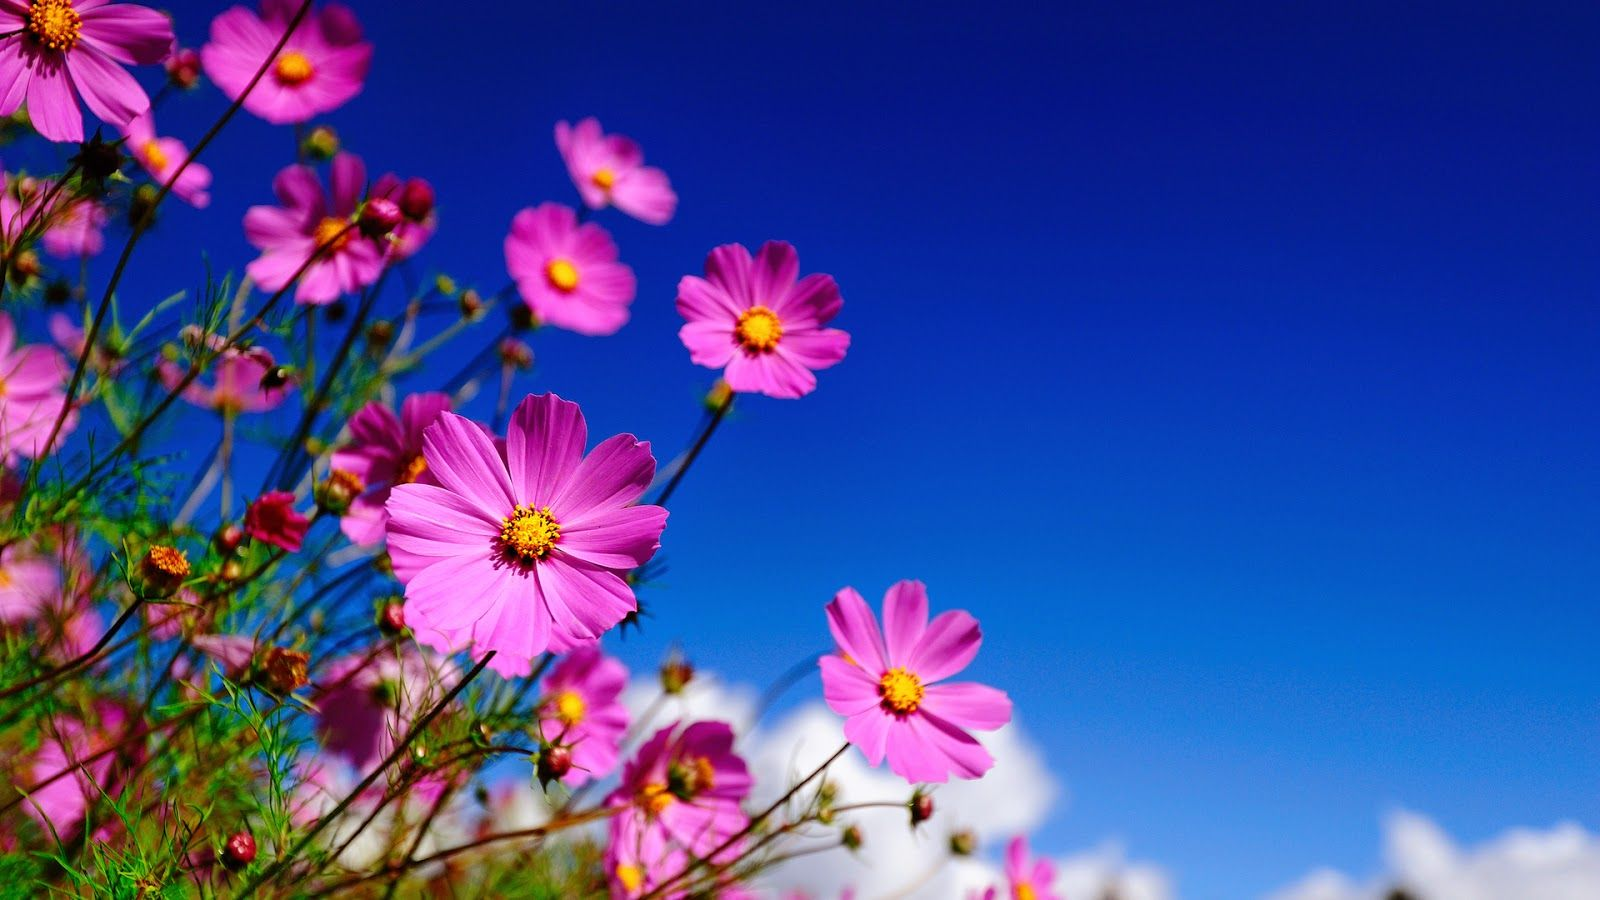 Download New Flowers Full Screen Hd Photo High Quality Backgrounds ...